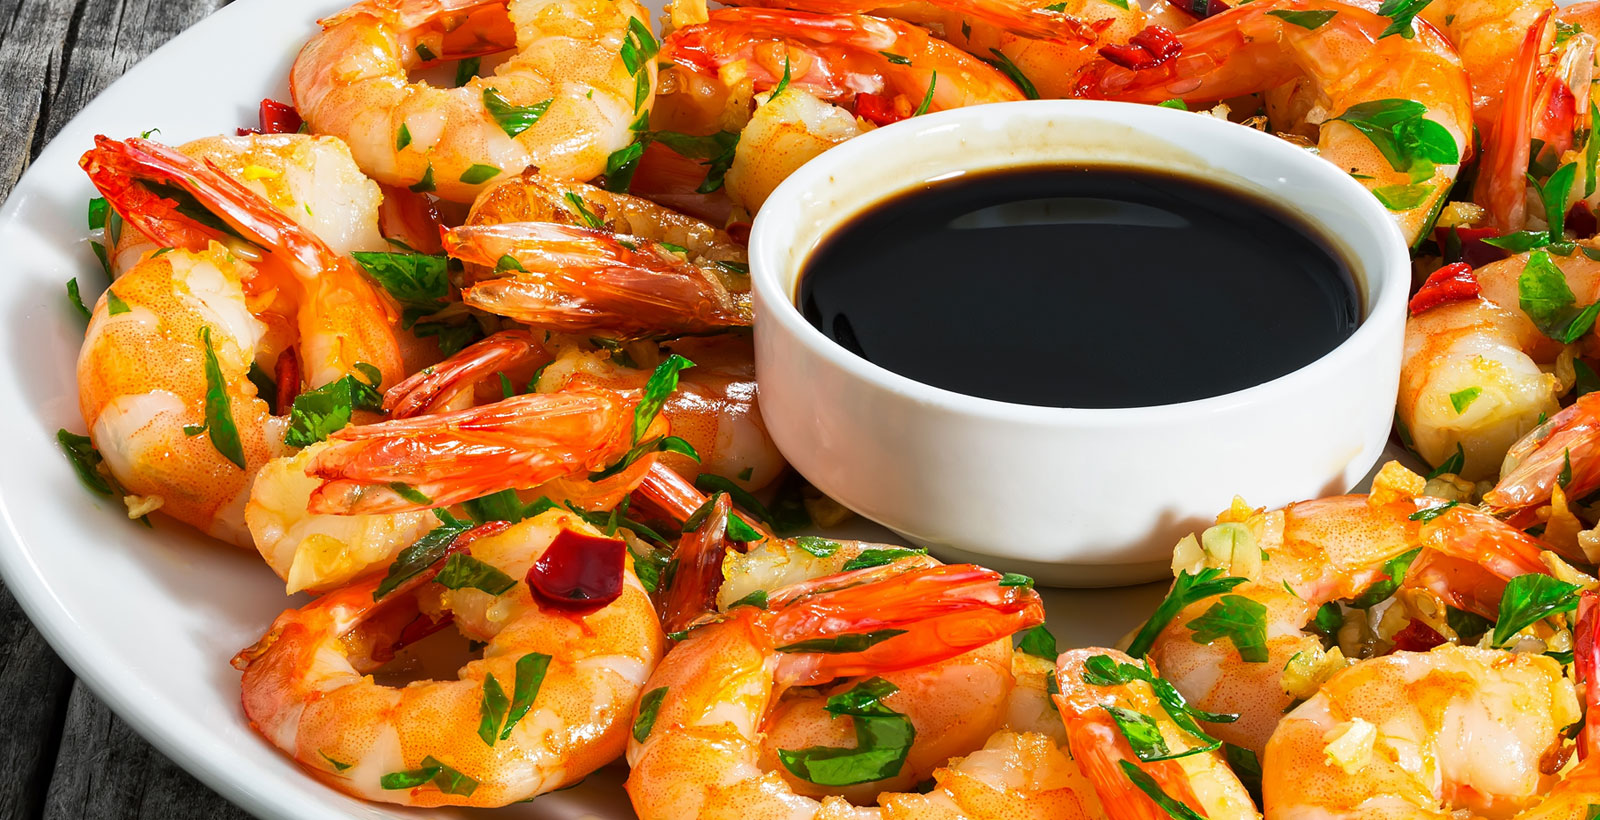 Cooked Shrimp - Tail On